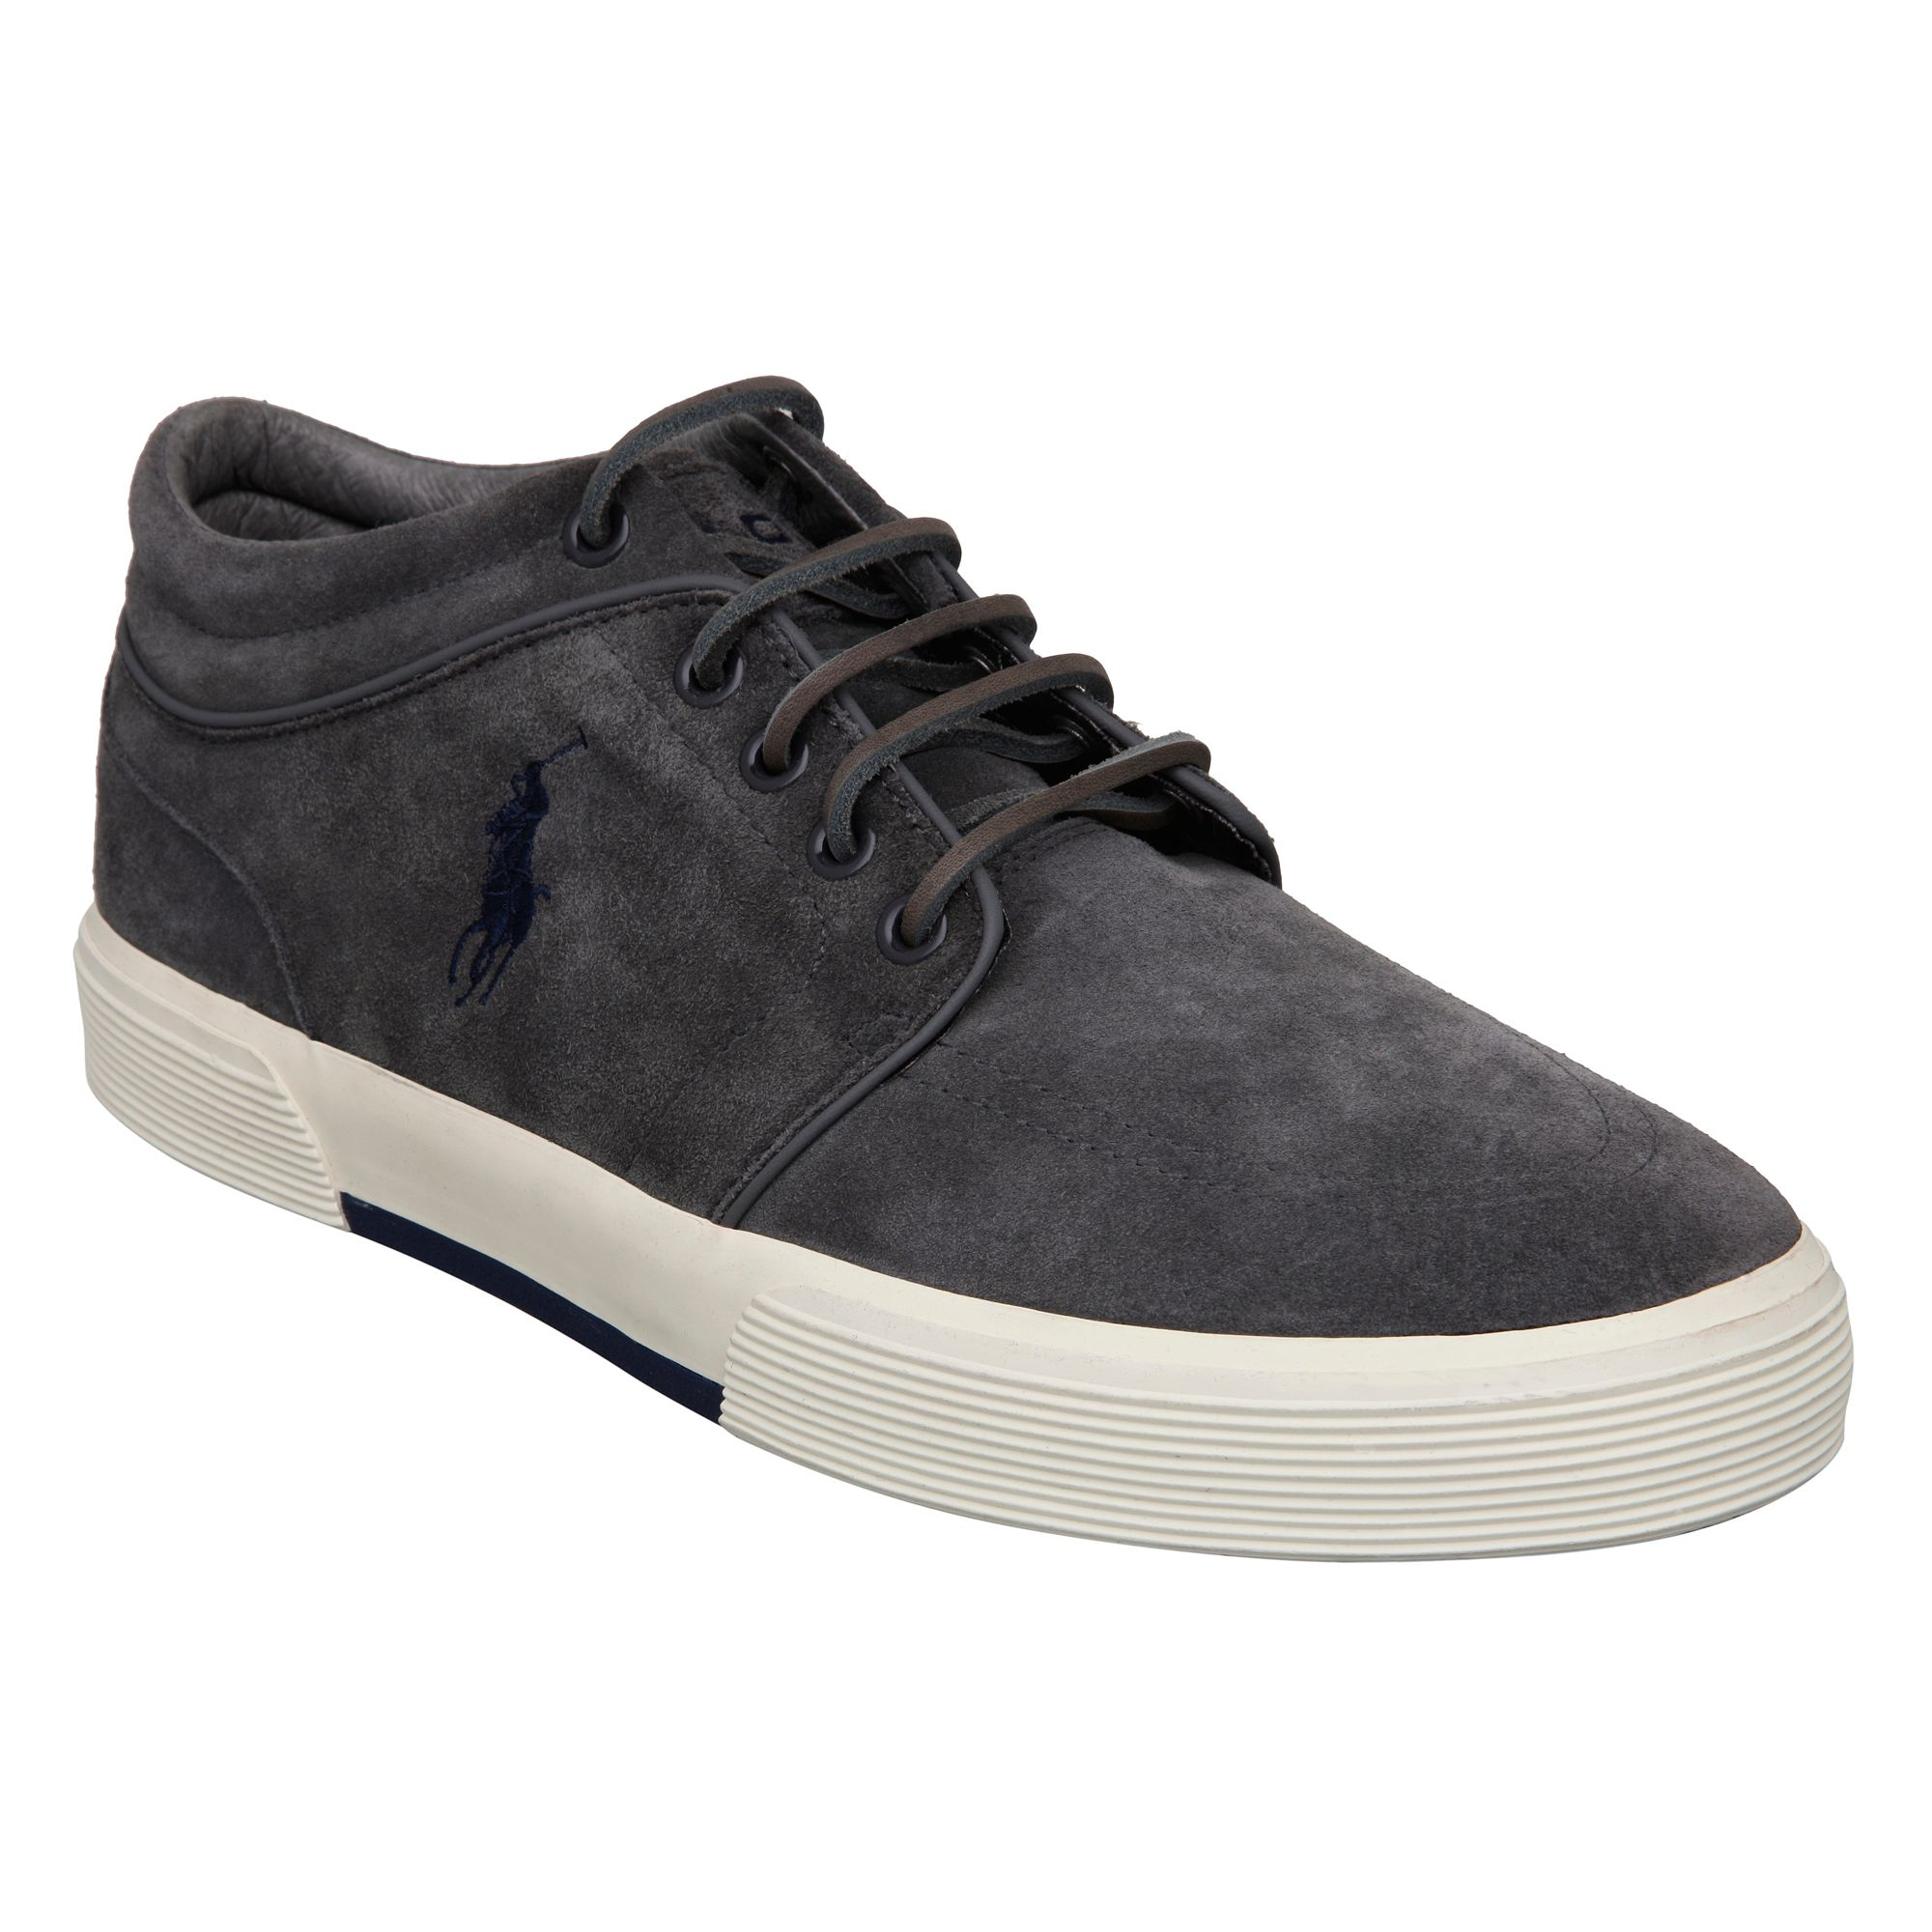 Polo Ralph Lauren Faxon Mid Ii Trainers, Grey